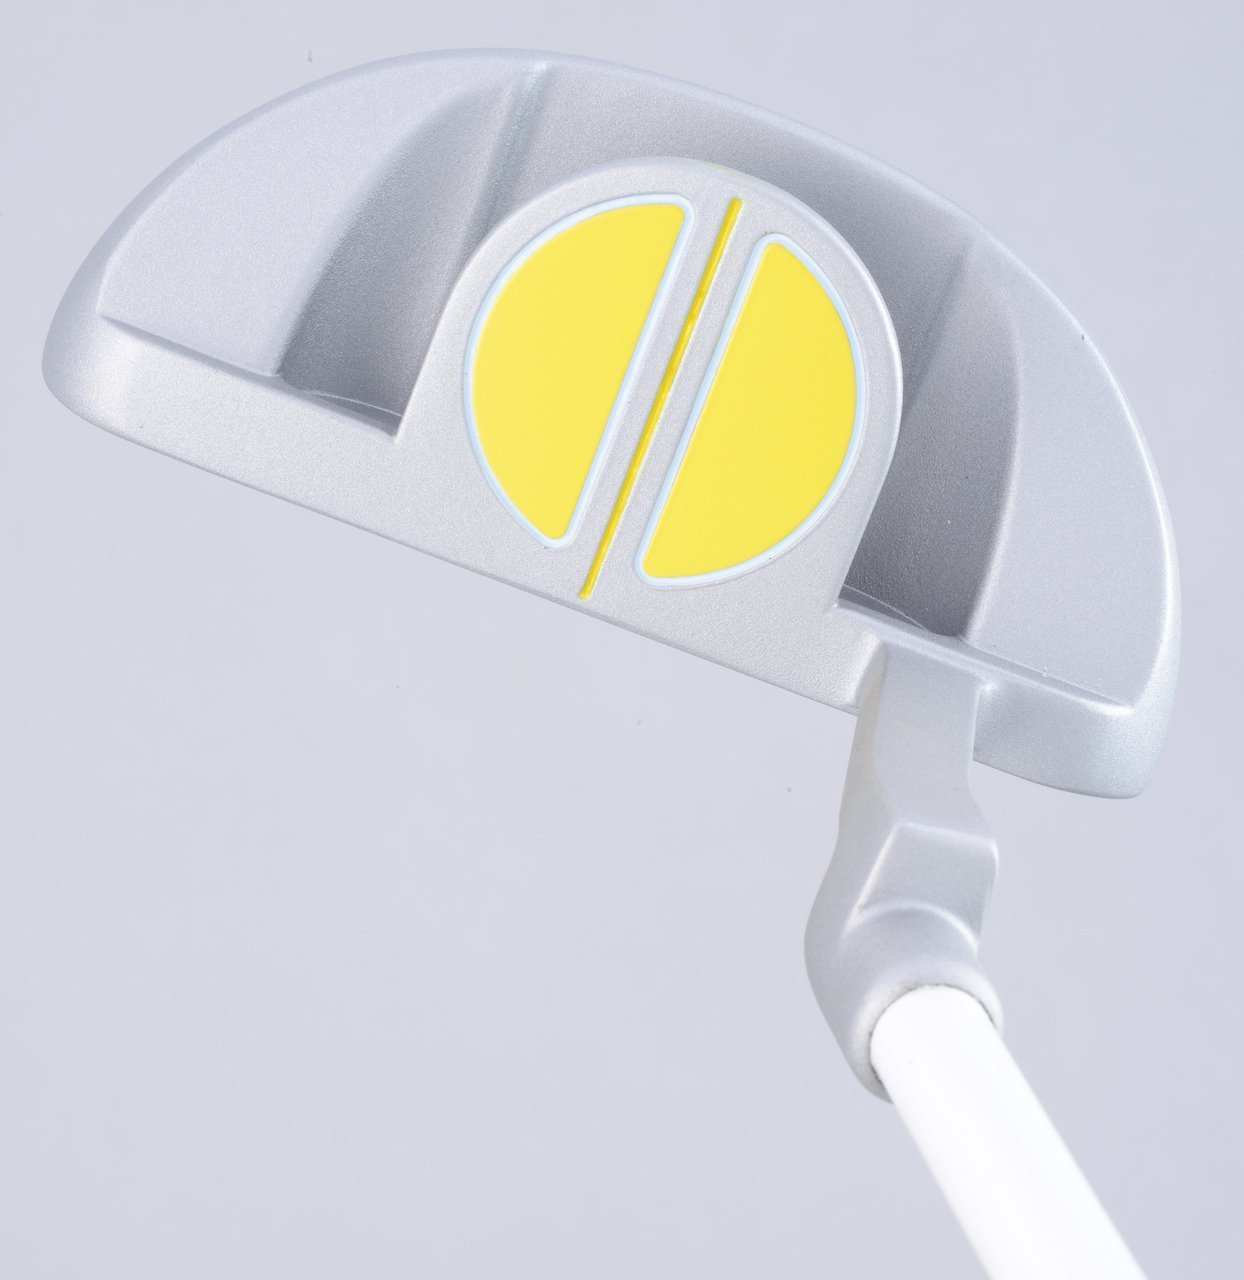 Paragon Rising Star Kids Golf Clubs Set / Ages 5-7 Yellow With Hat / Left-Hand by Paragon (Image #5)